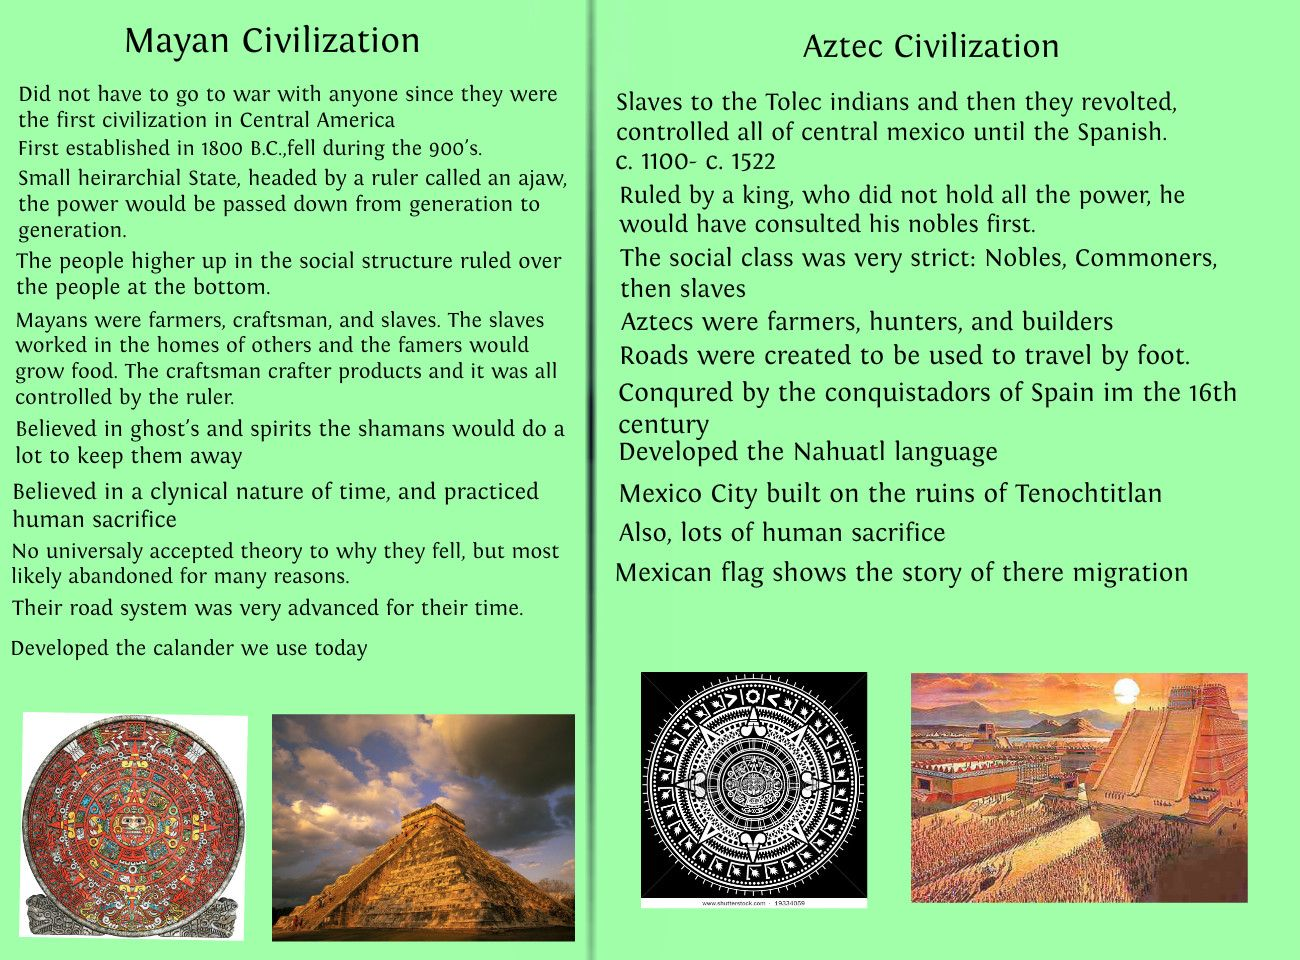 aztec vs. inca essay Aztecs vs incas we all have memories from school lessons of these two great civilizations from south america pre-european in origin, both these civilizations of native american peoples were as.